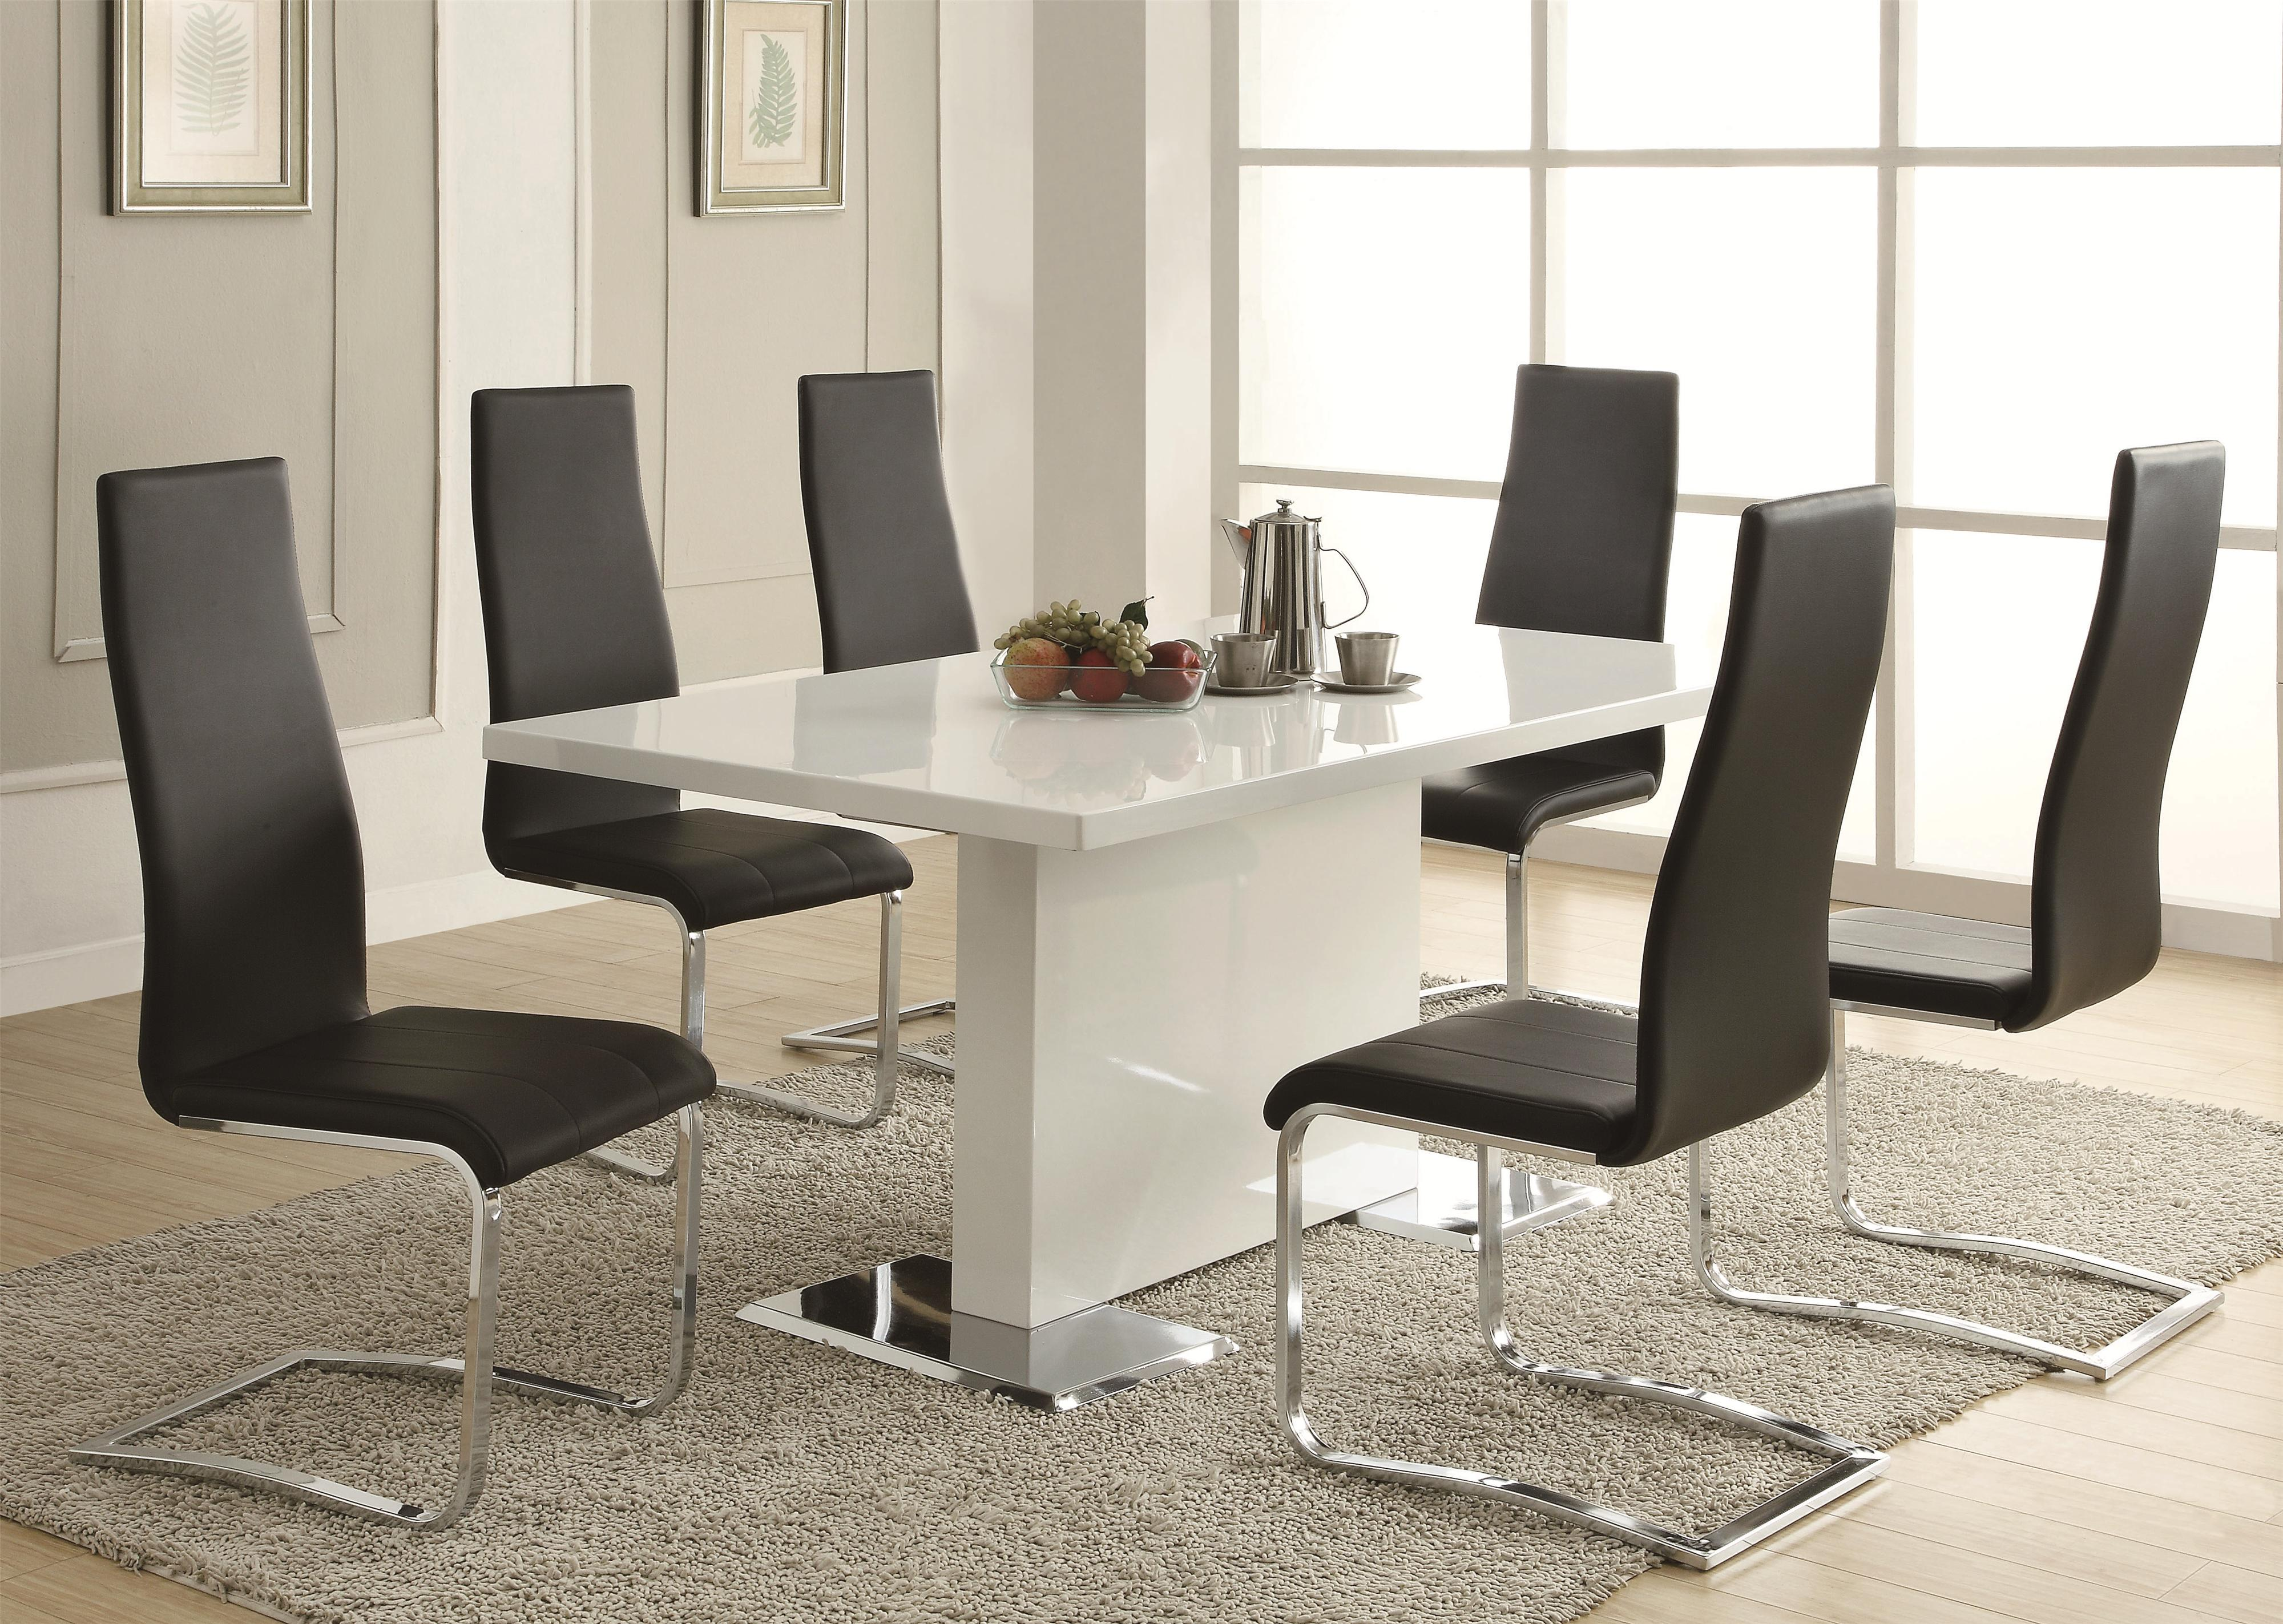 Stylish Coaster Modern Dining 7 Piece White Table u0026 White Upholstered Chairs Set - contemporary white dining room sets